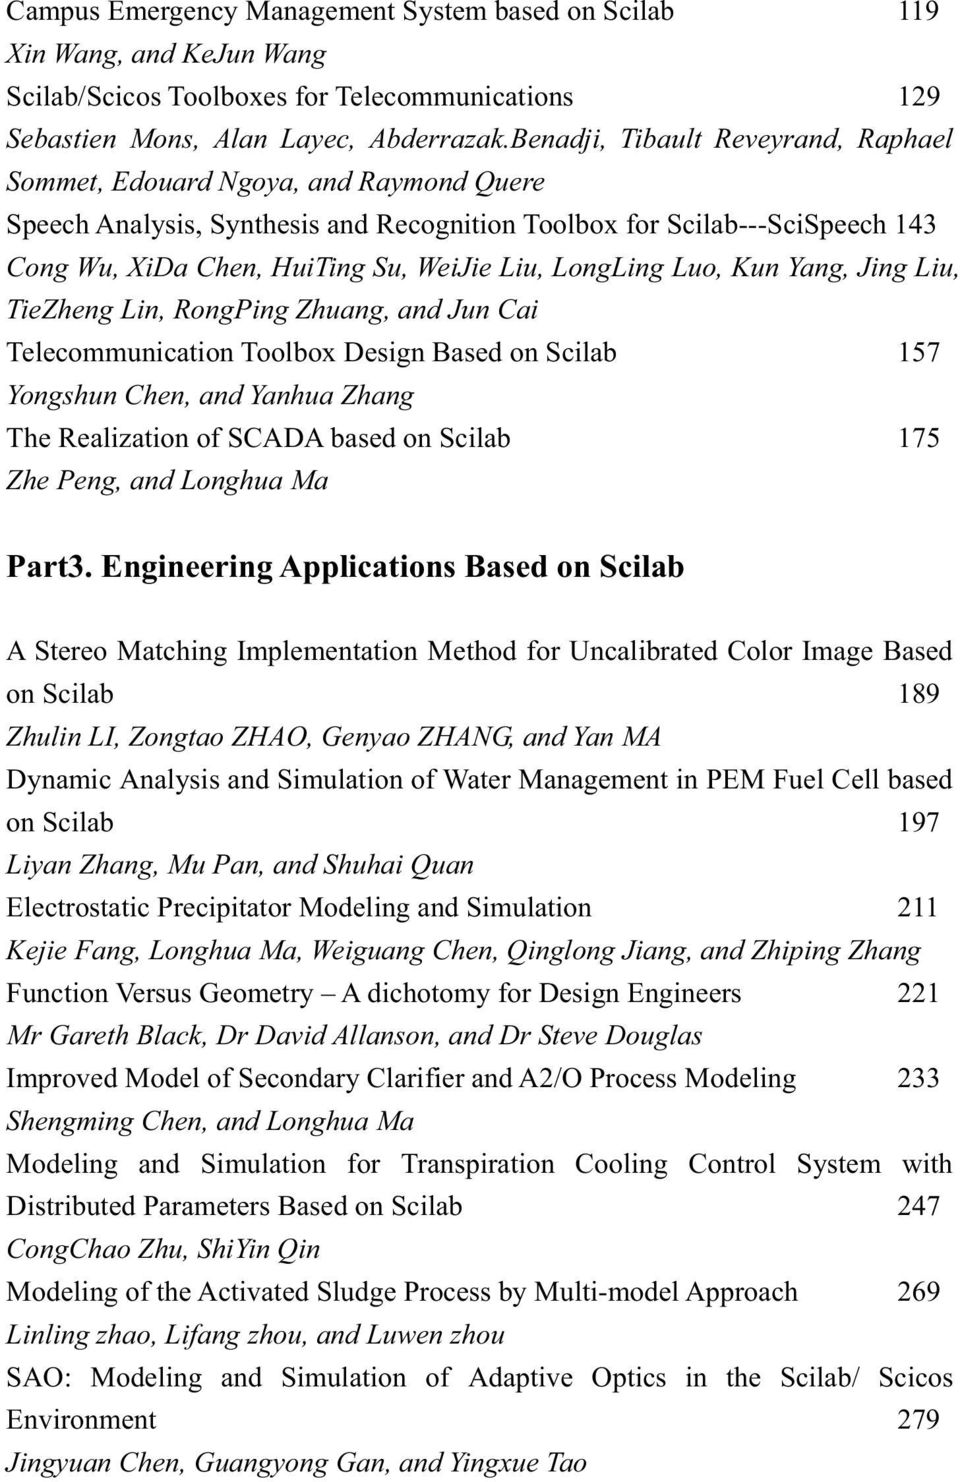 LongLing Luo, Kun Yang, Jing Liu, TieZheng Lin, RongPing Zhuang, and Jun Cai Telecommunication Toolbox Design Based on Scilab 157 Yongshun Chen, and Yanhua Zhang The Realization of SCADA based on